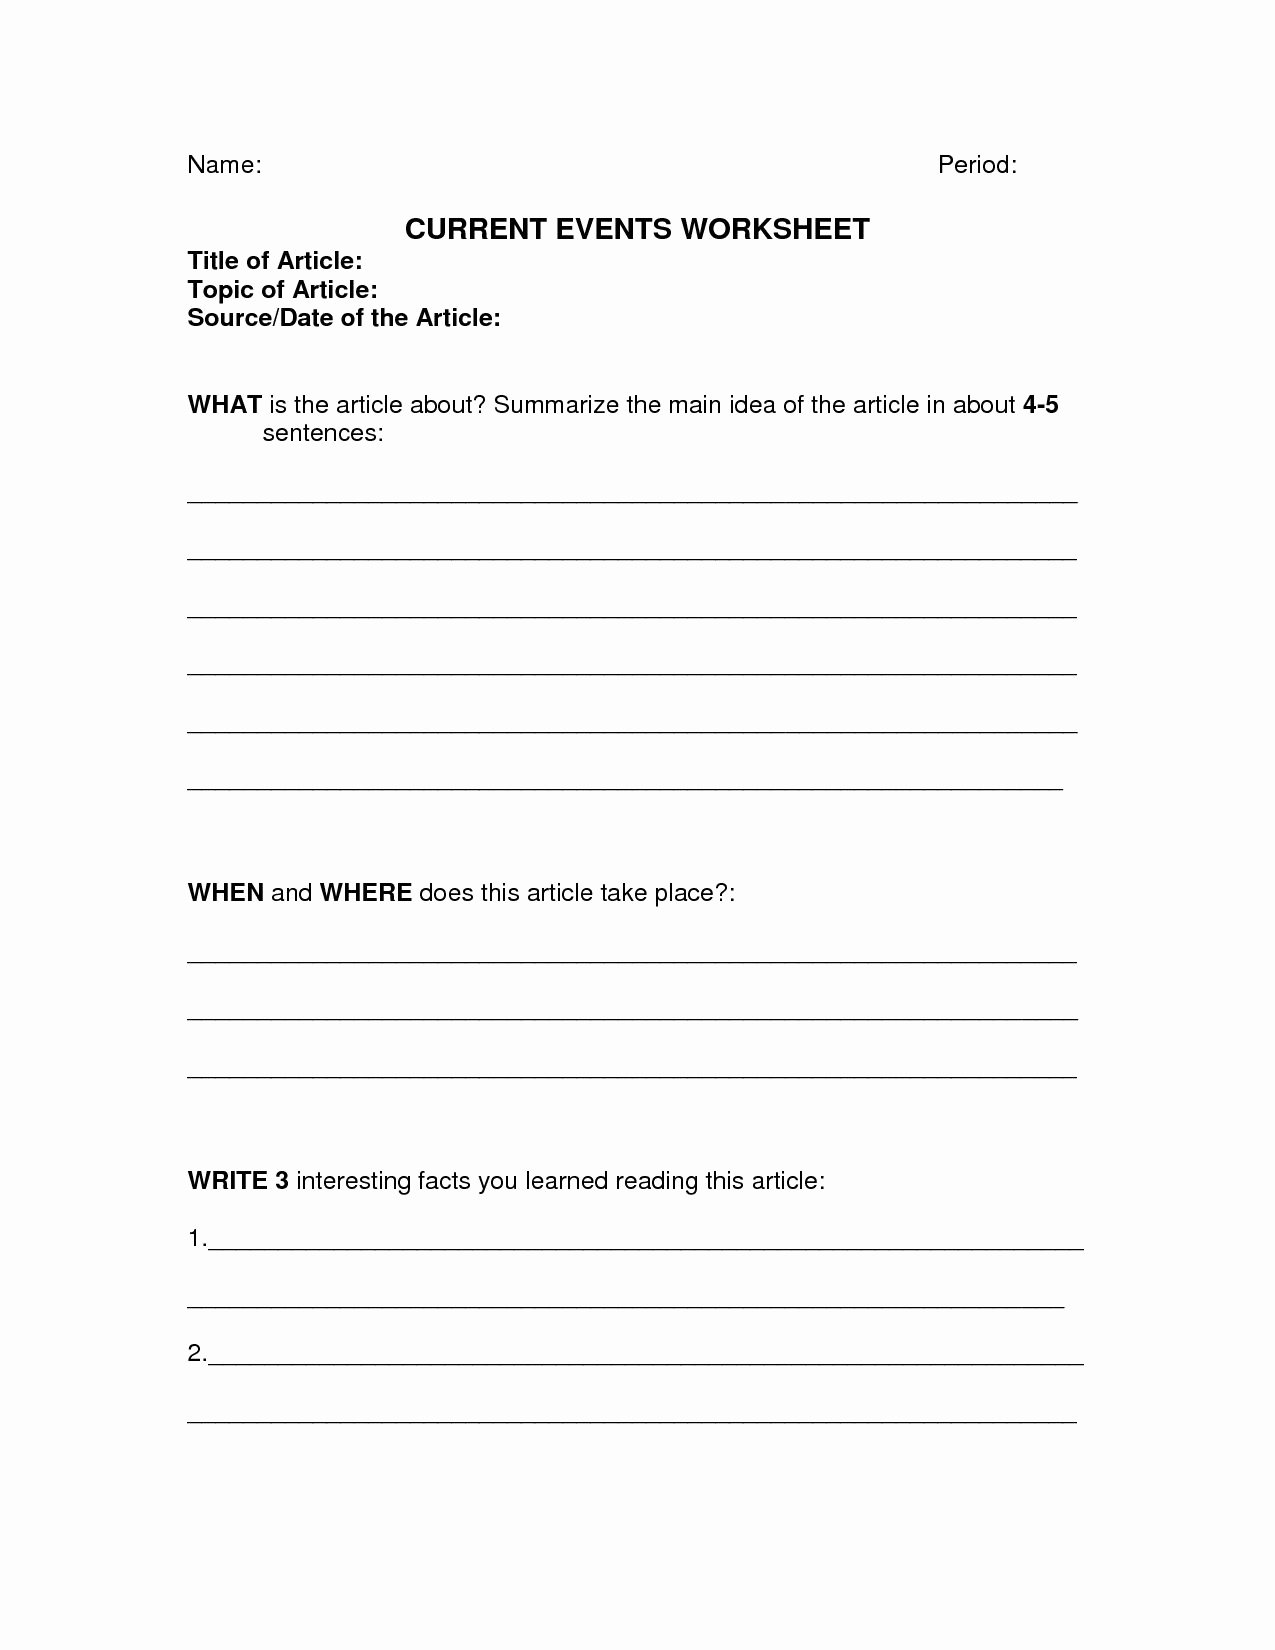 Current events Worksheet Middle School Inspirational Biology Current events Worksheet Printable